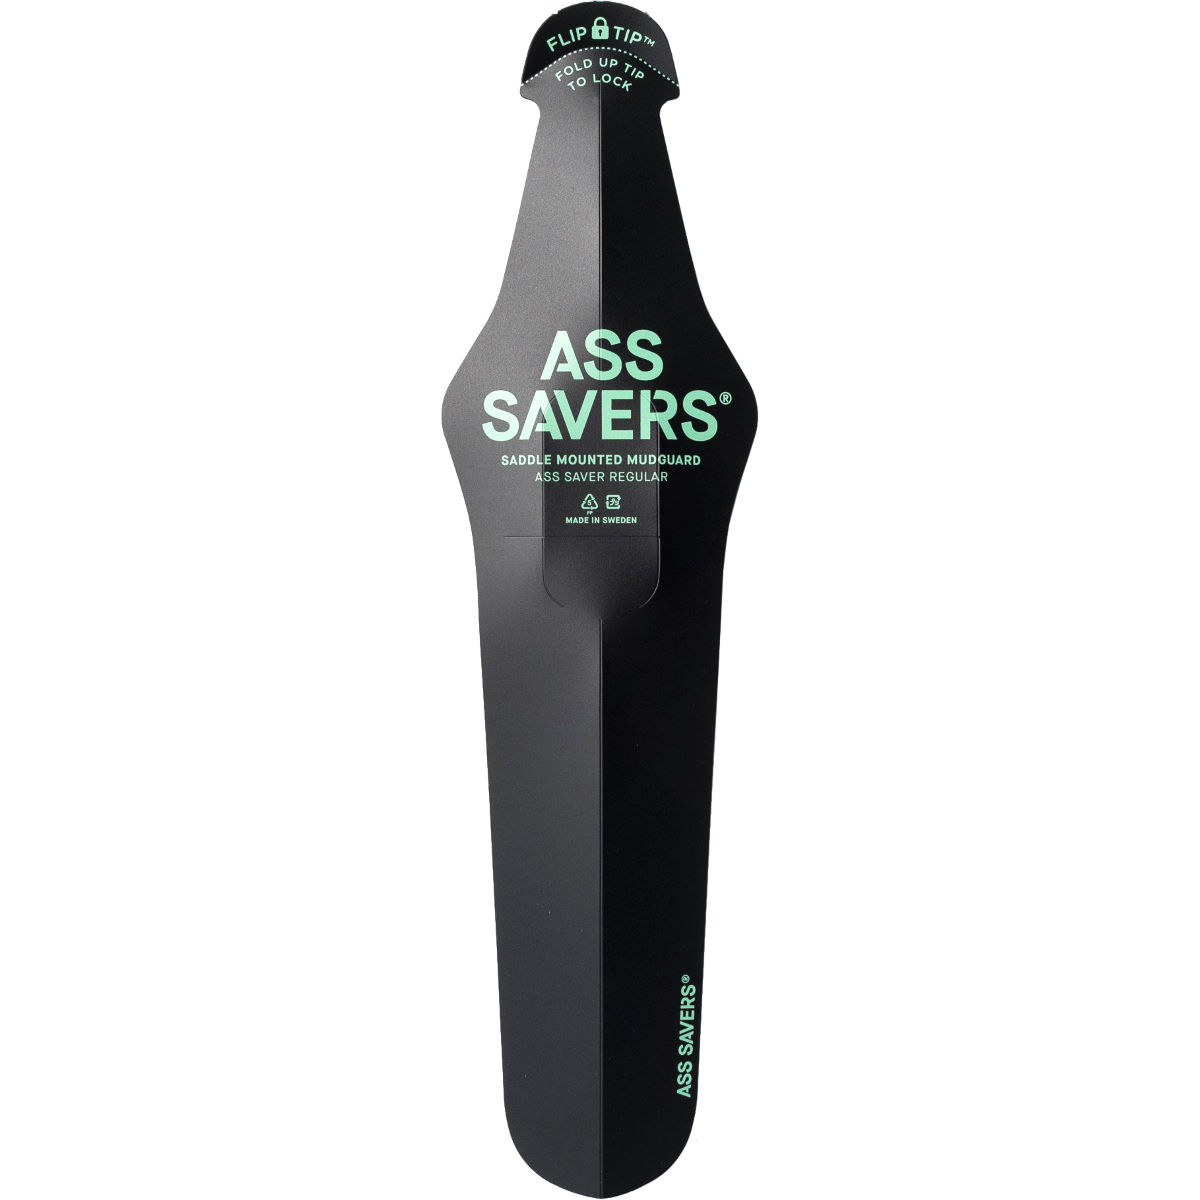 Garde-boue Ass Saver Regular - Noir Garde-boues